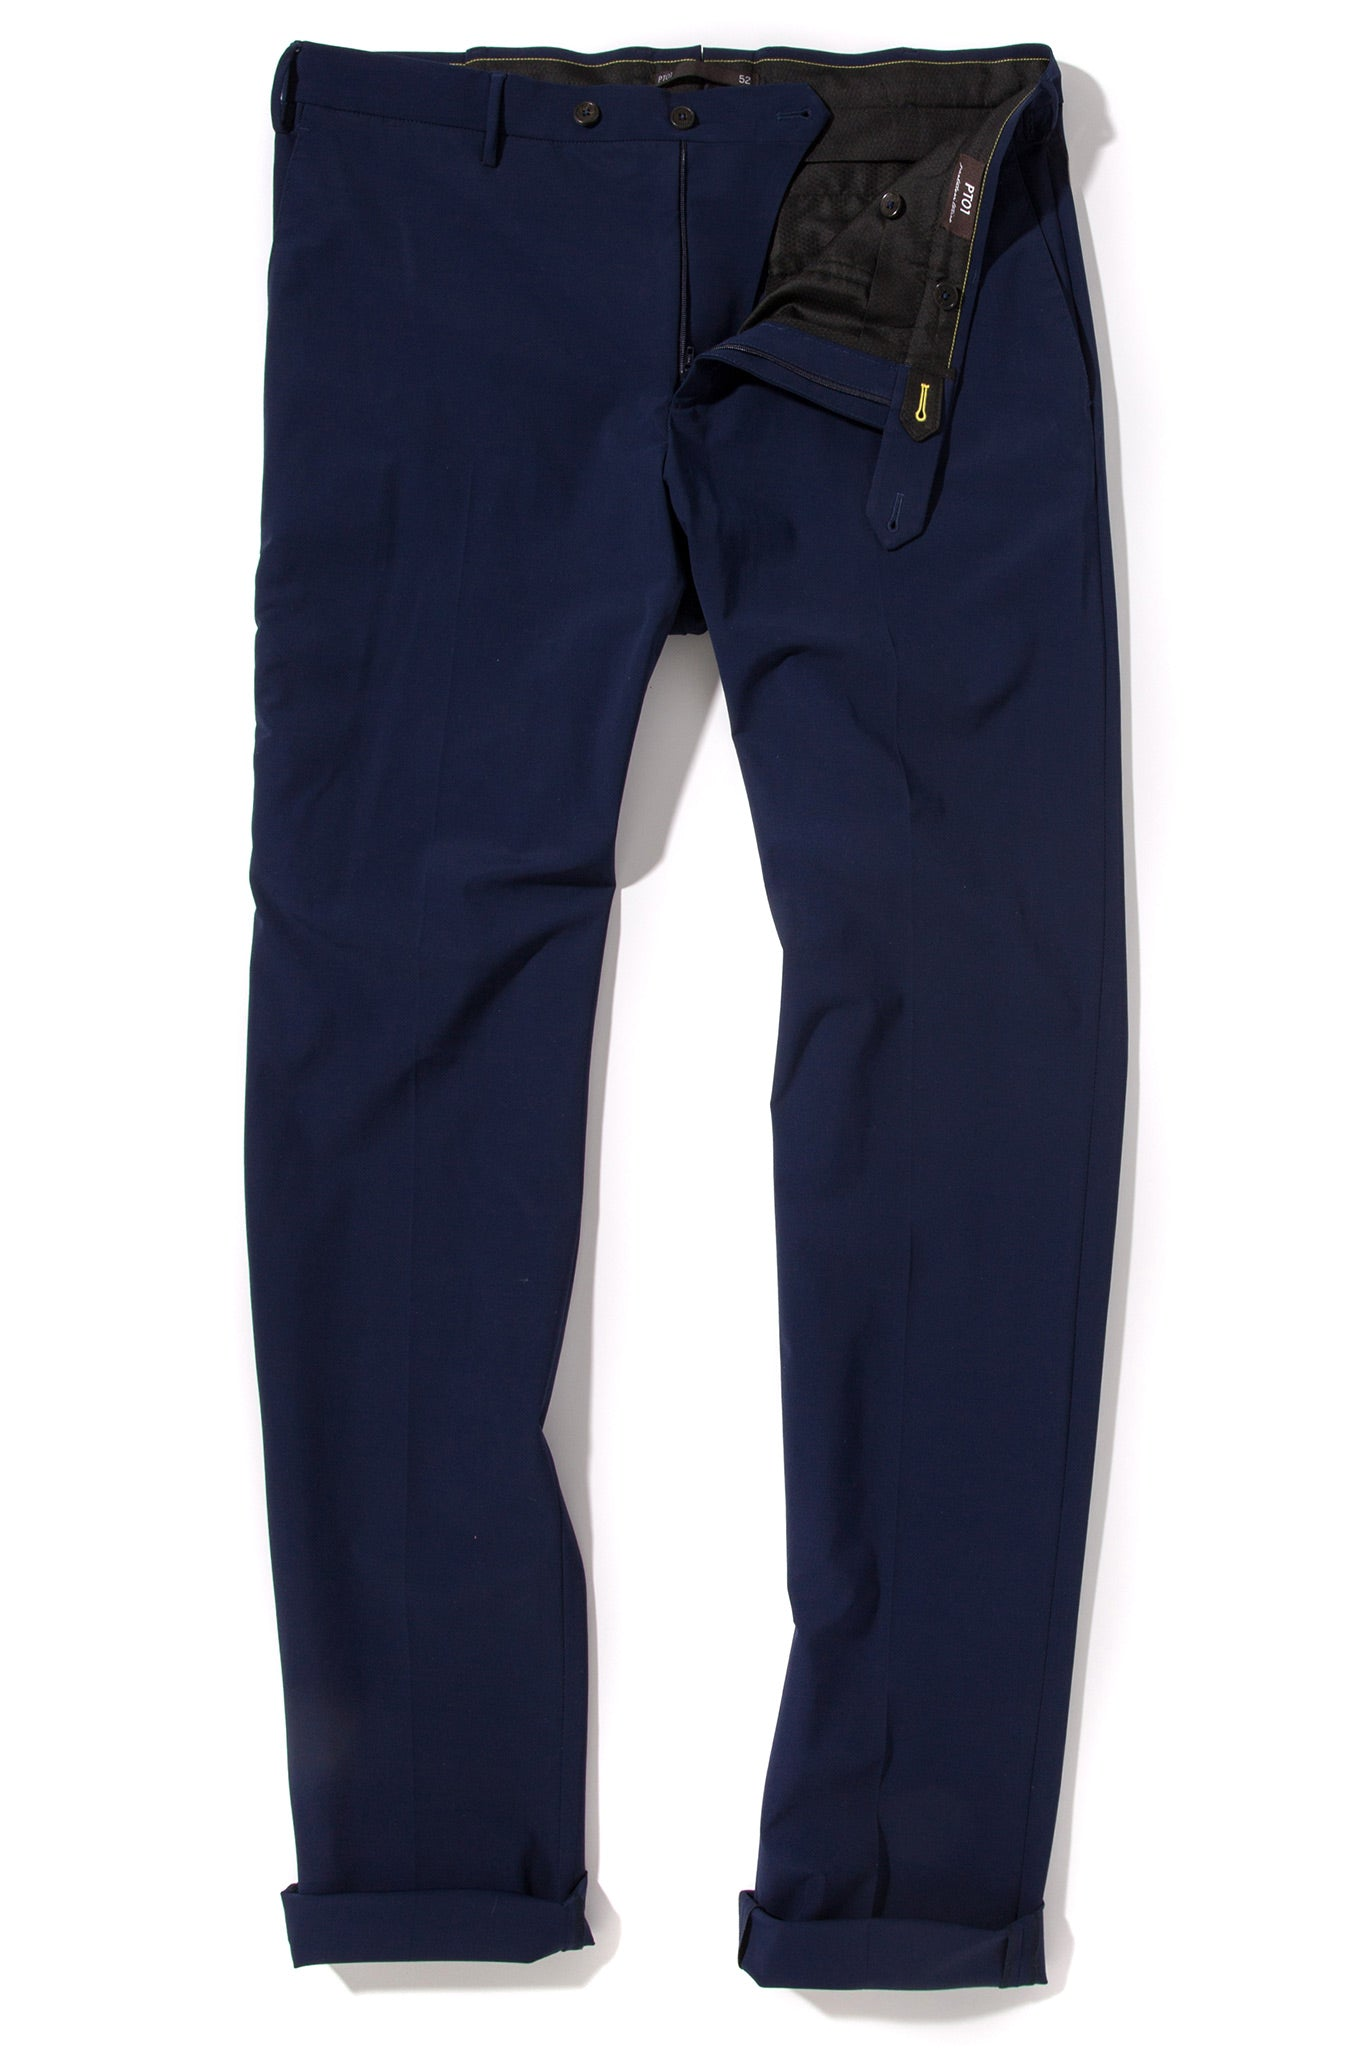 Castino Light Performance Pant (1393917821021)